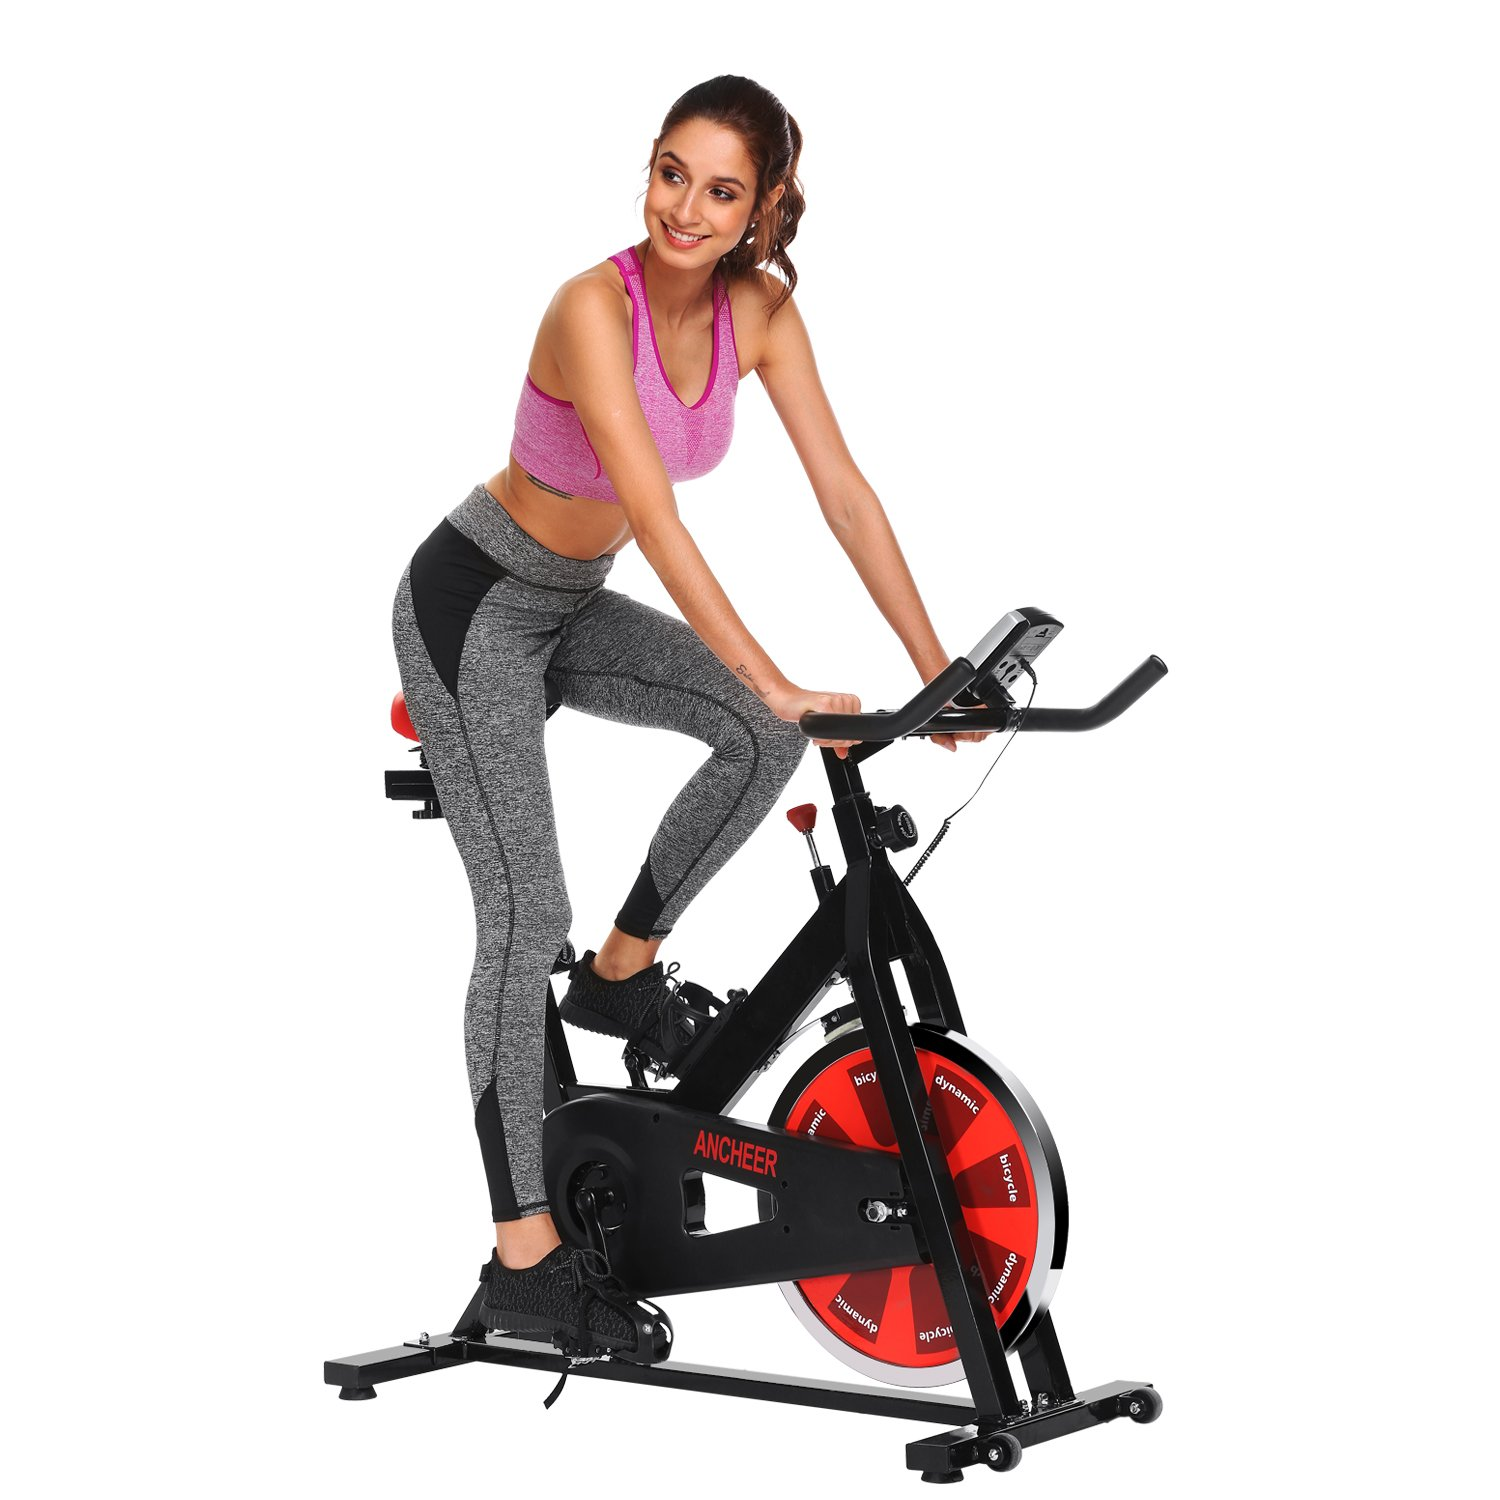 ANCHEER Stationary Bike, Belt Drive Indoor Cycling Exercise Bike 40 LBS Flywheel (Black_Red) by ANCHEER (Image #1)